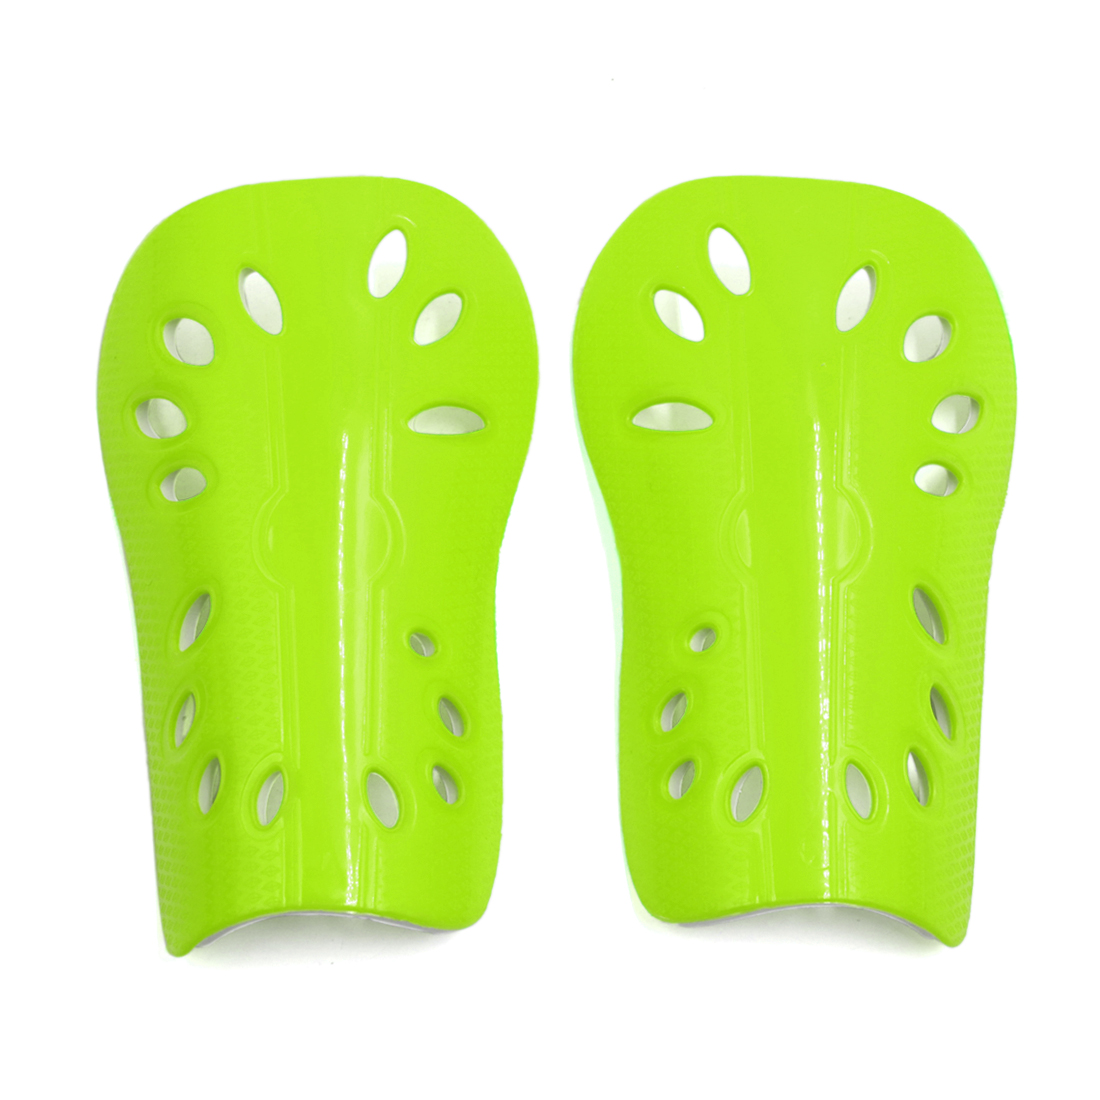 1 Pair Fluorescent Yellow Adult Football Outdoor Sports Shin Pad Protective Gear Legs Guards